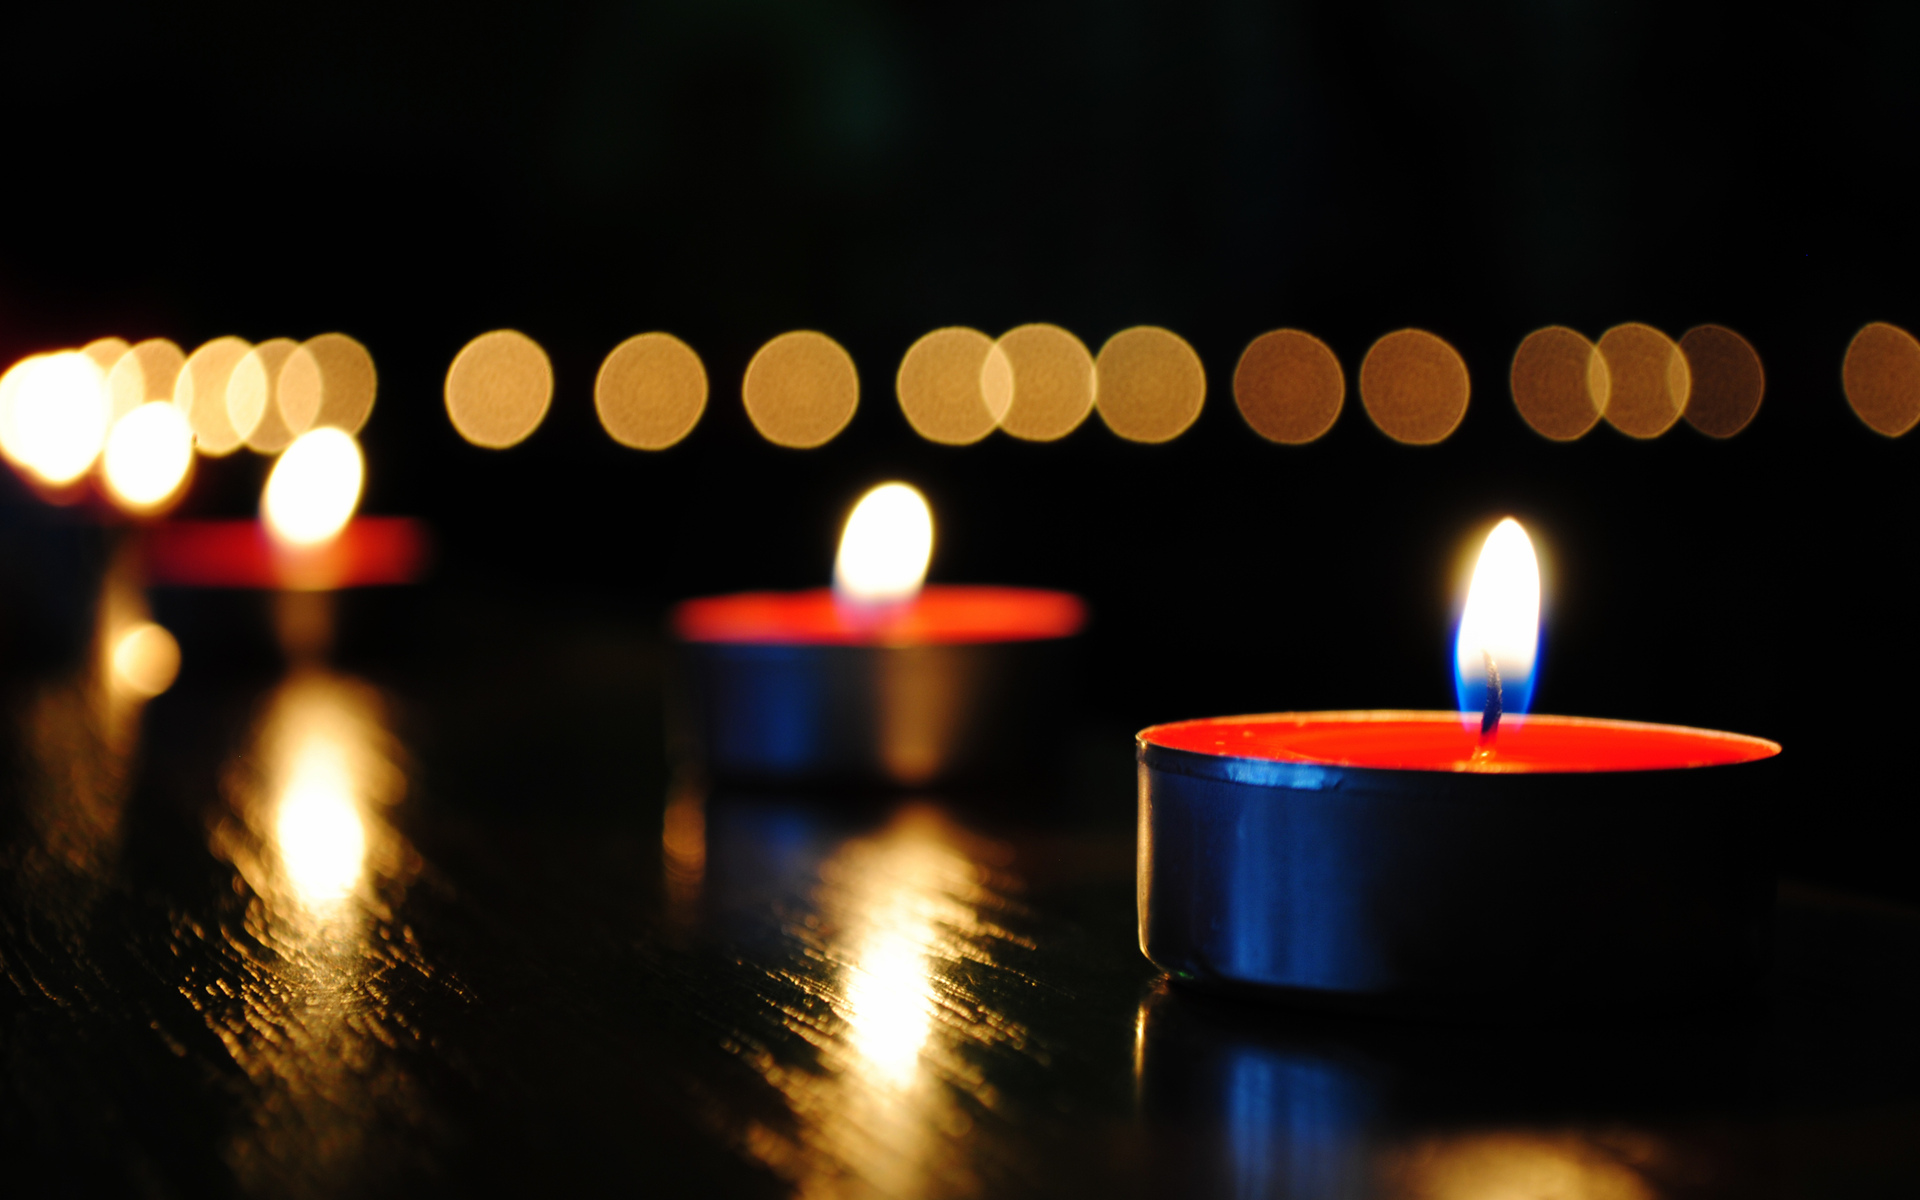 Candle-Light-Exposure-Photograpy.jpg